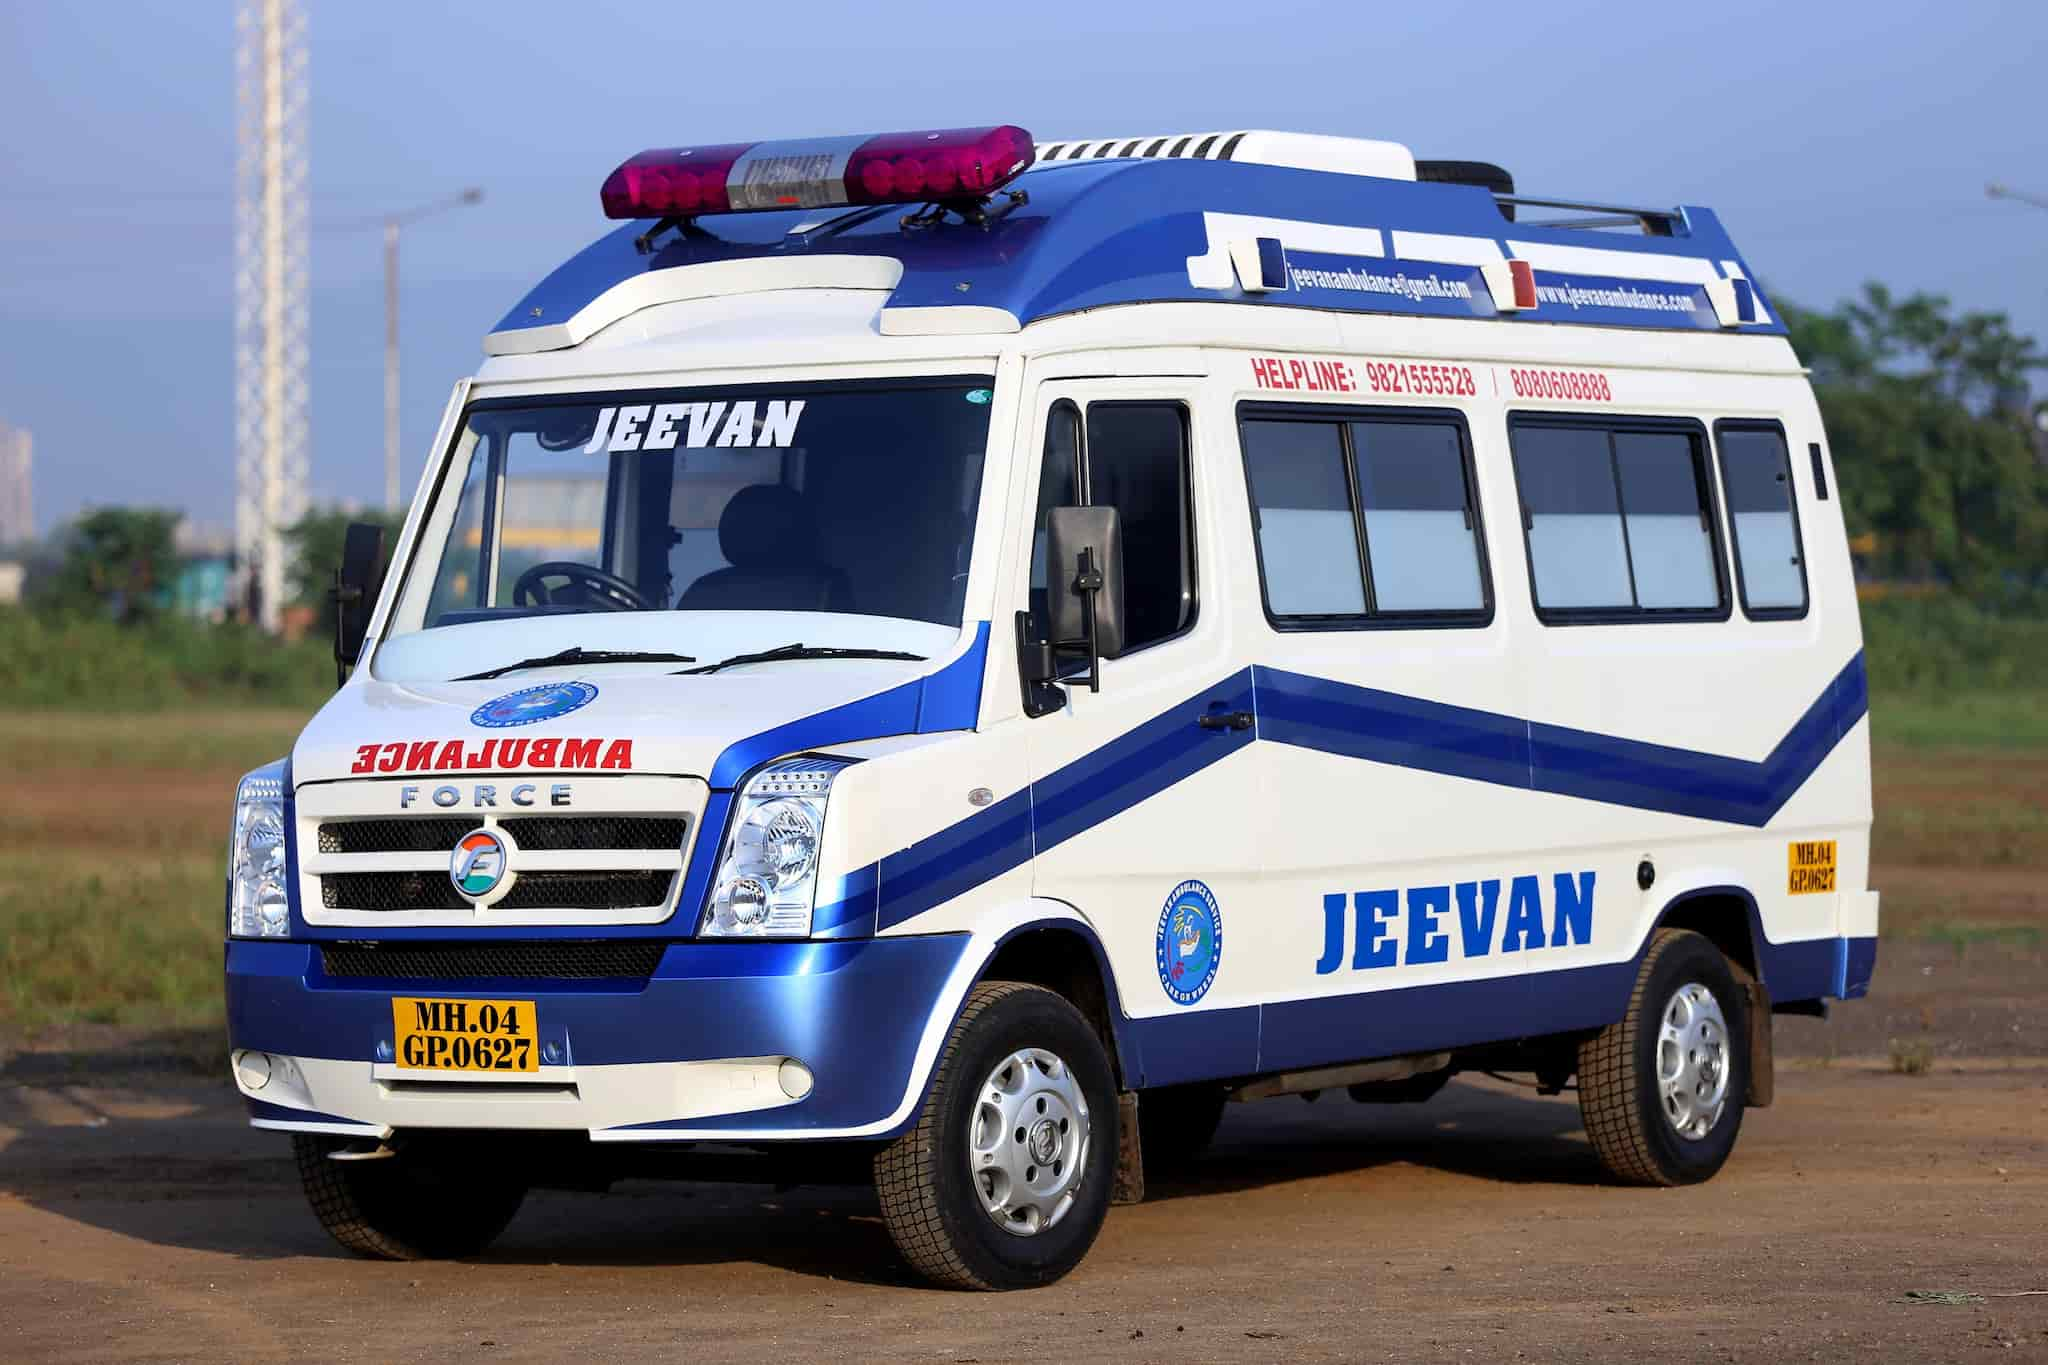 Ambulance Images jeevan ambulance service photos, nerul, thane- pictures & images